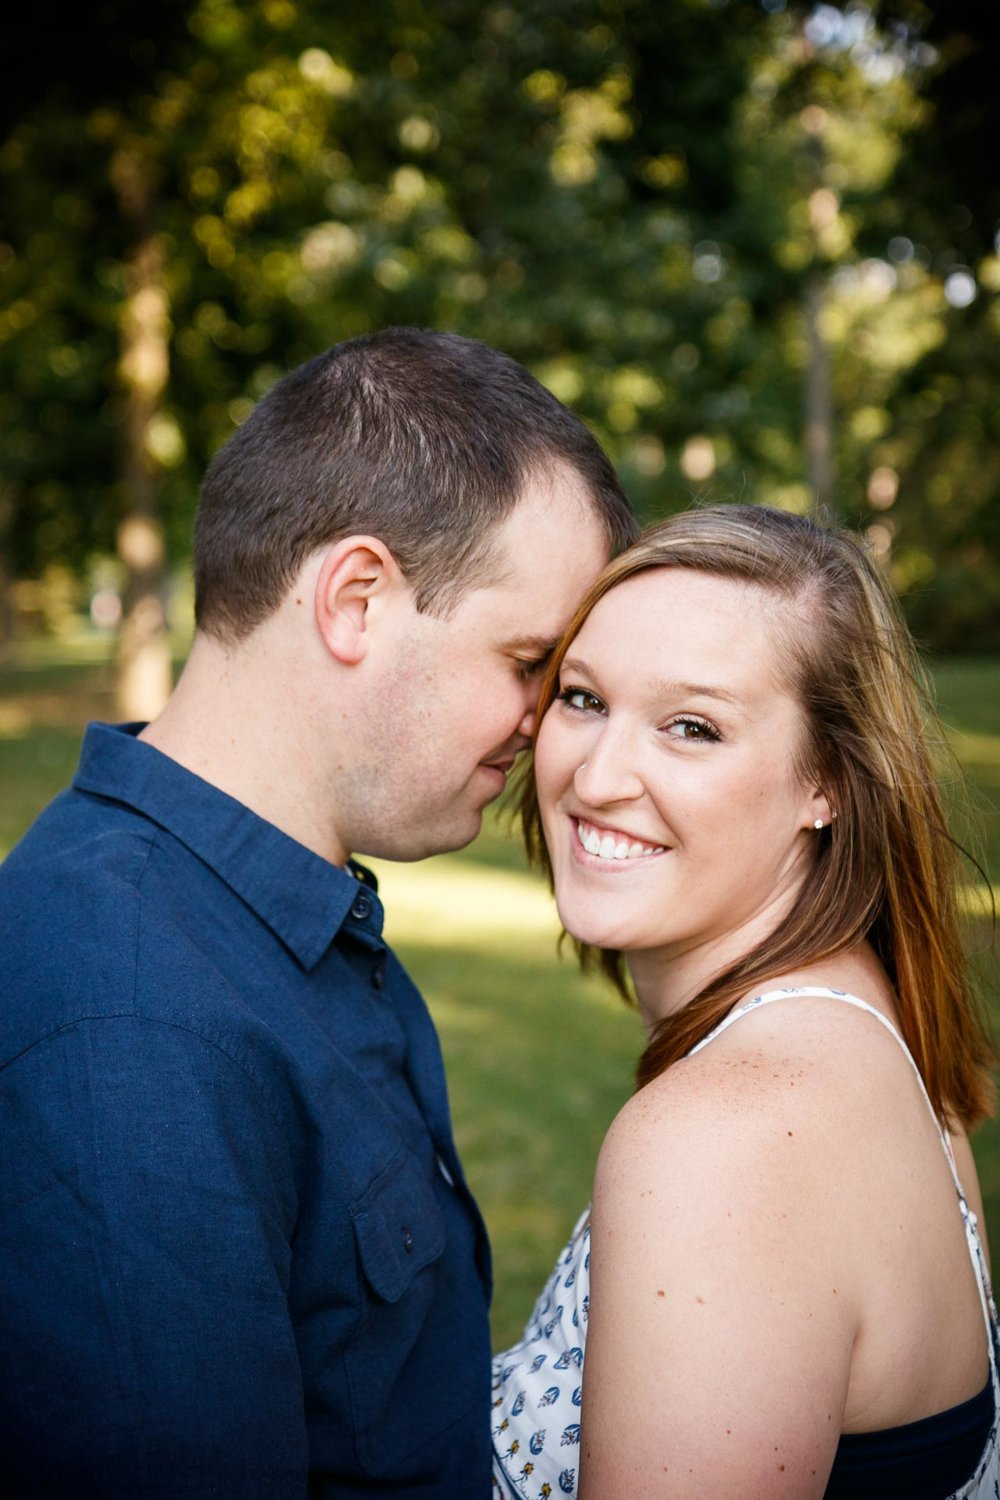 engagement-photos-riverside-park-neenah-adam-shea-photography-green-bay-appleton-neenah-photographer-6.jpg